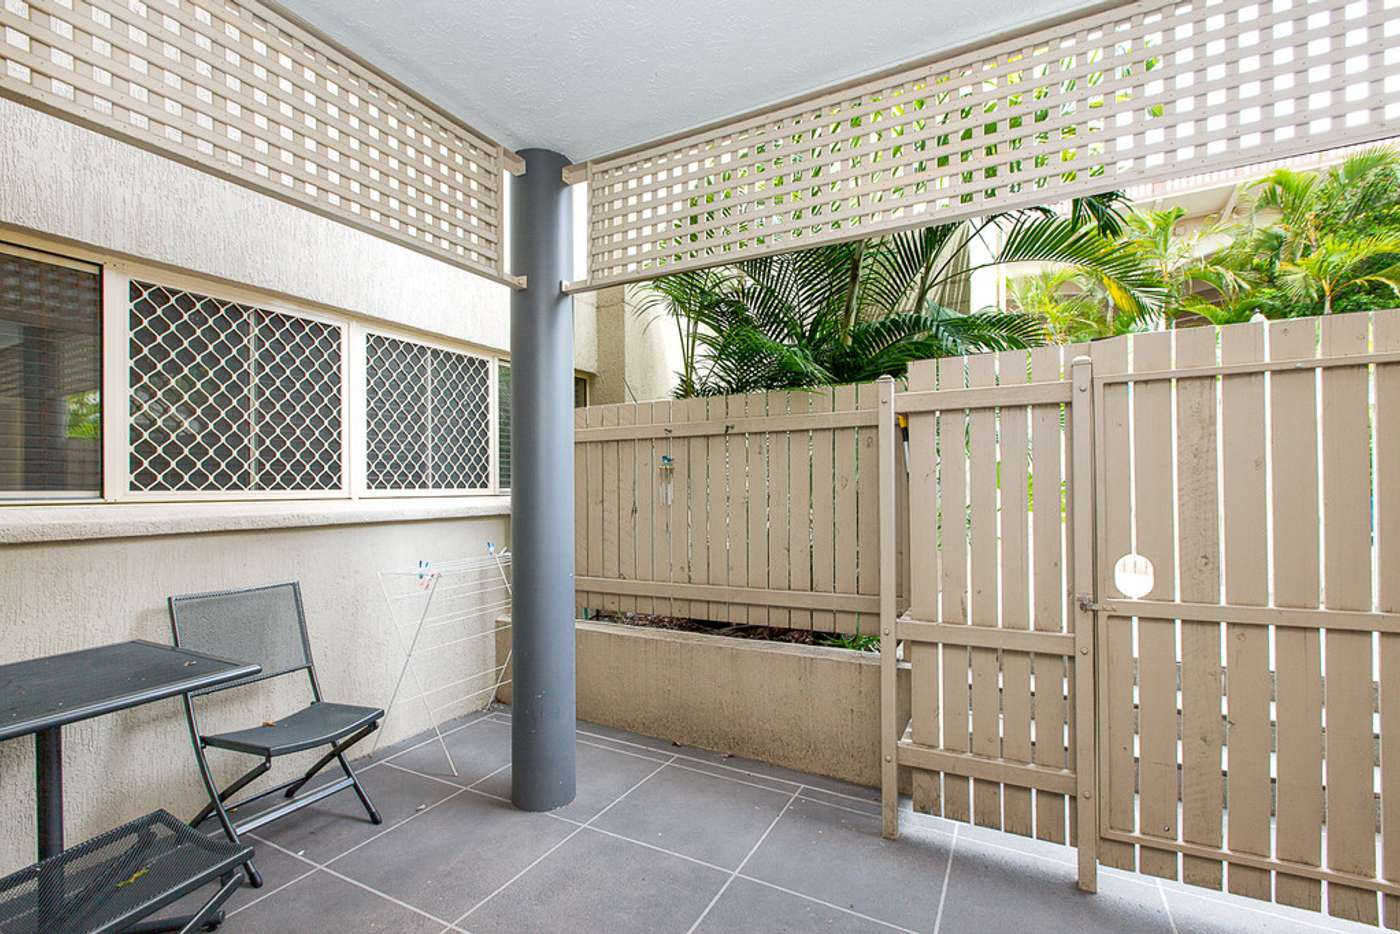 Seventh view of Homely apartment listing, 85 Deakin Street,,, Kangaroo Point QLD 4169